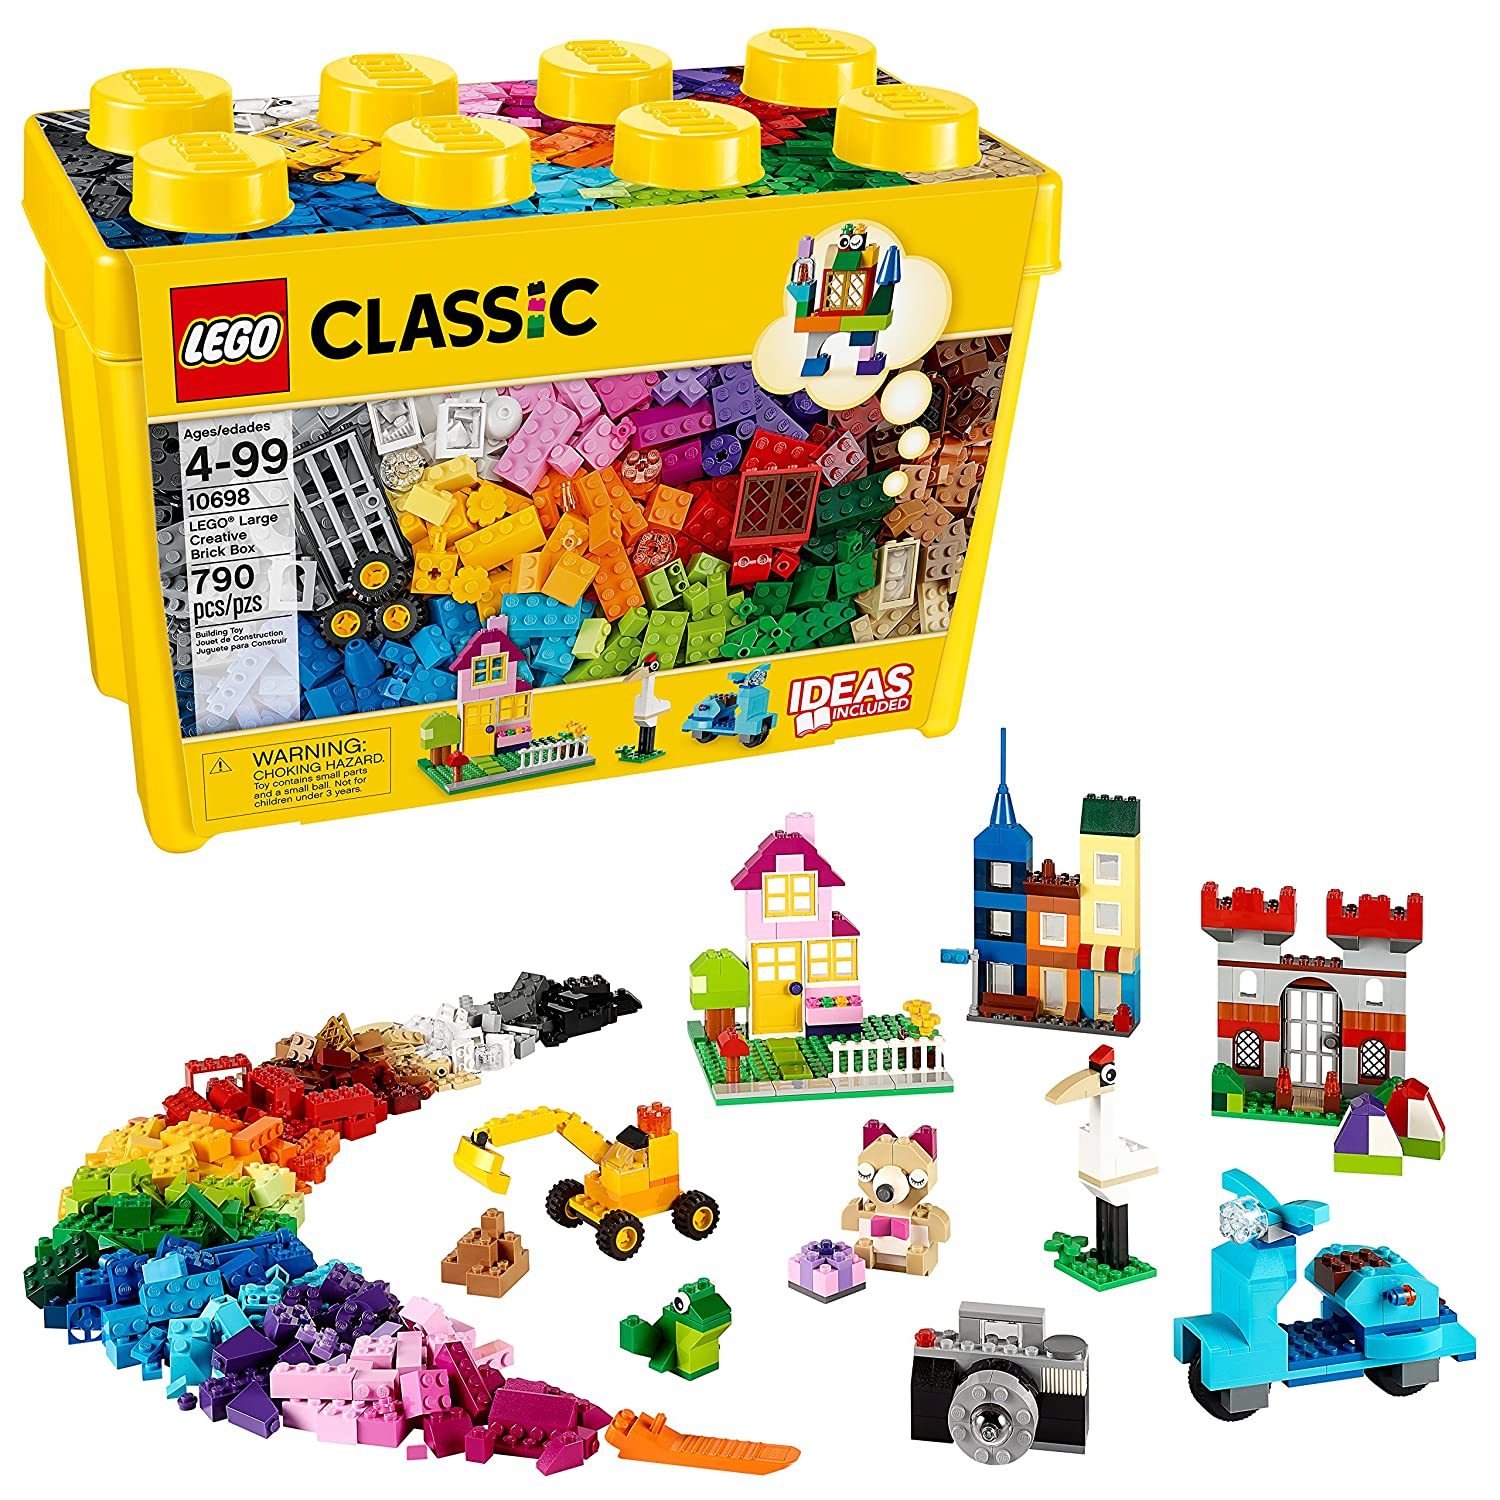 Top 9 Best Lego Duplo Sets Reviews in 2019 1